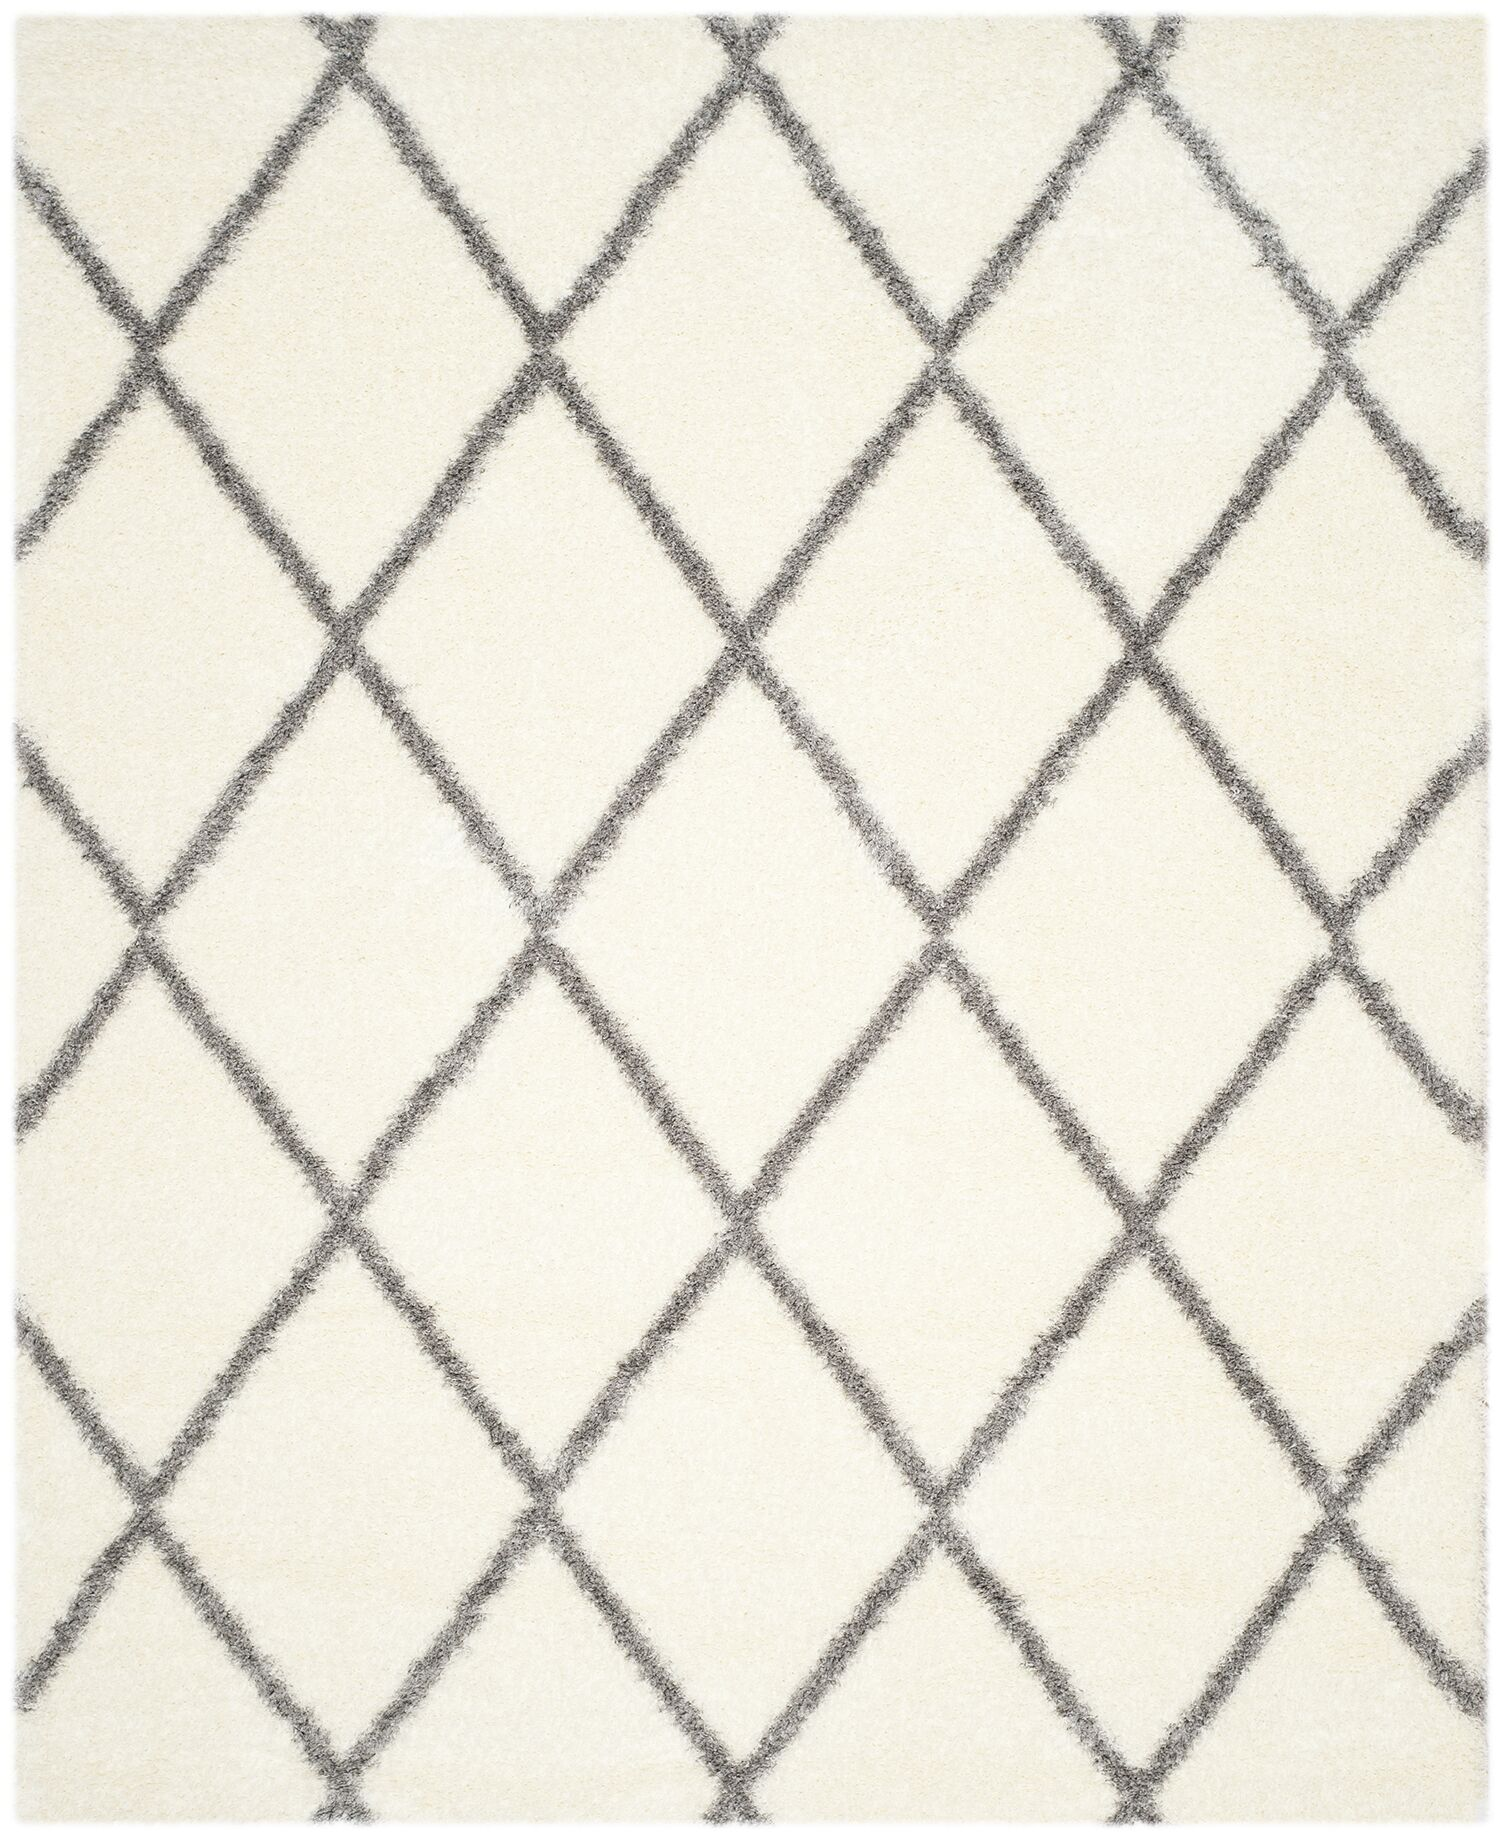 Macungie Gray/Beige Area Rug Rug Size: Rectangle 8' x 10'